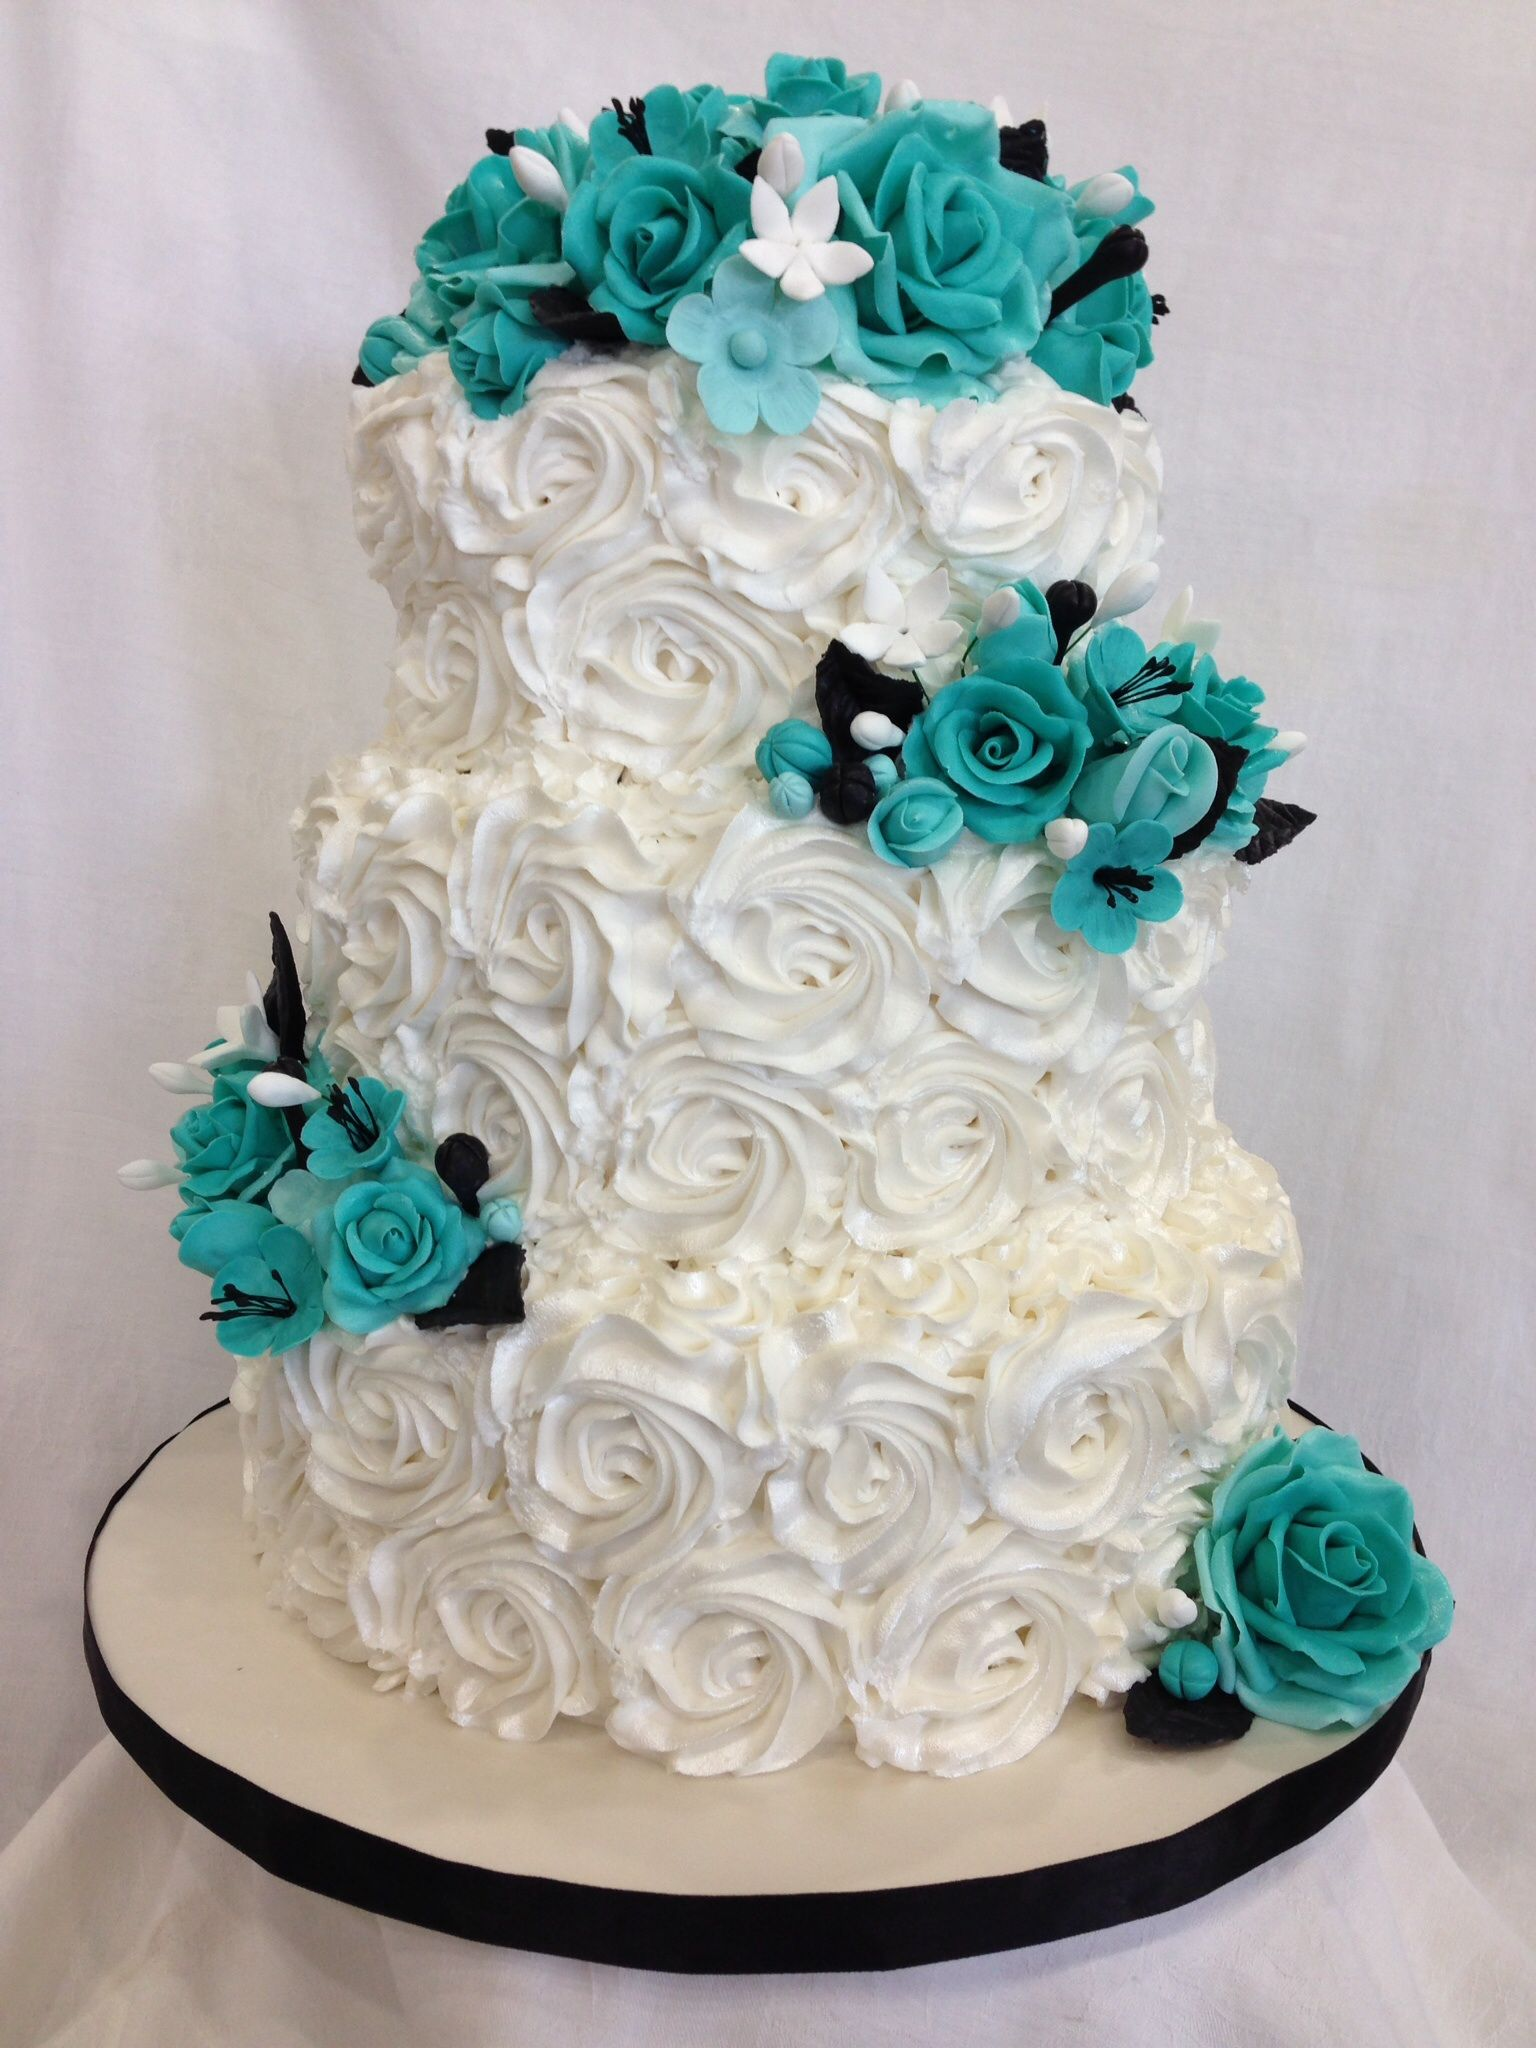 Rosette Cake With Turquoise Roses Cake Is Vanilla W Bc Icing And